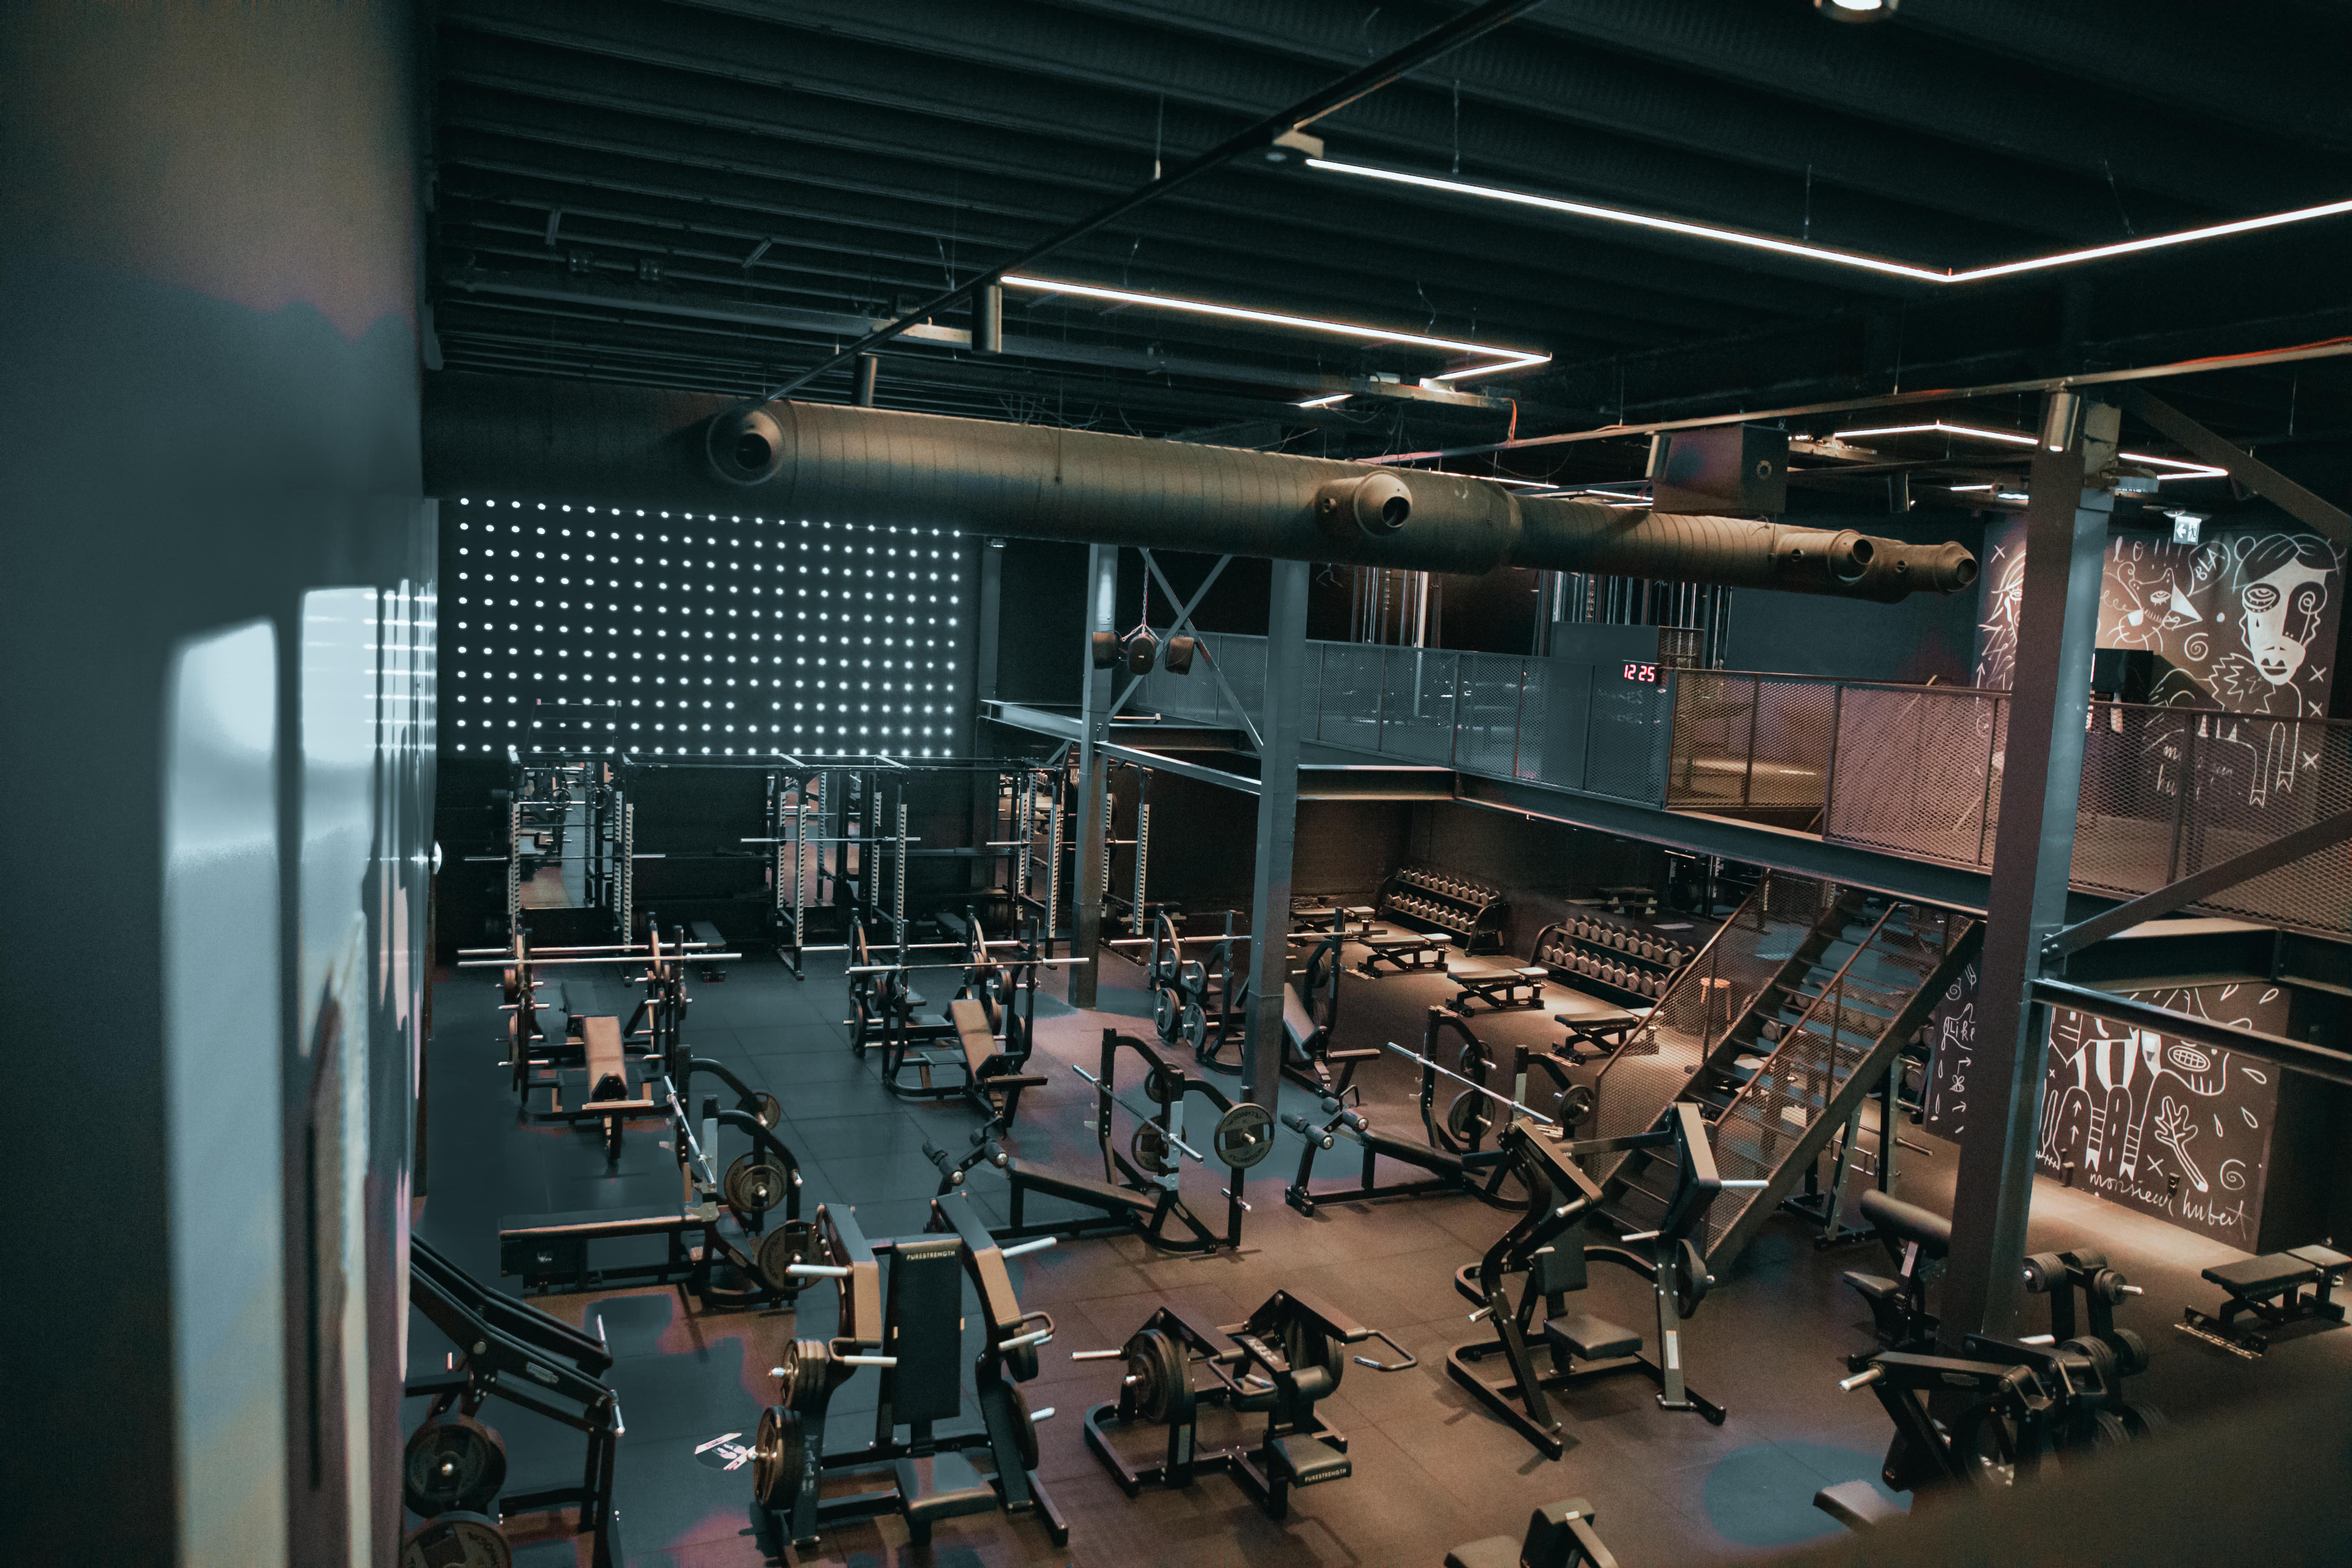 Technology and fitness industry leaders join Advisory Board of the Urban Gym Group